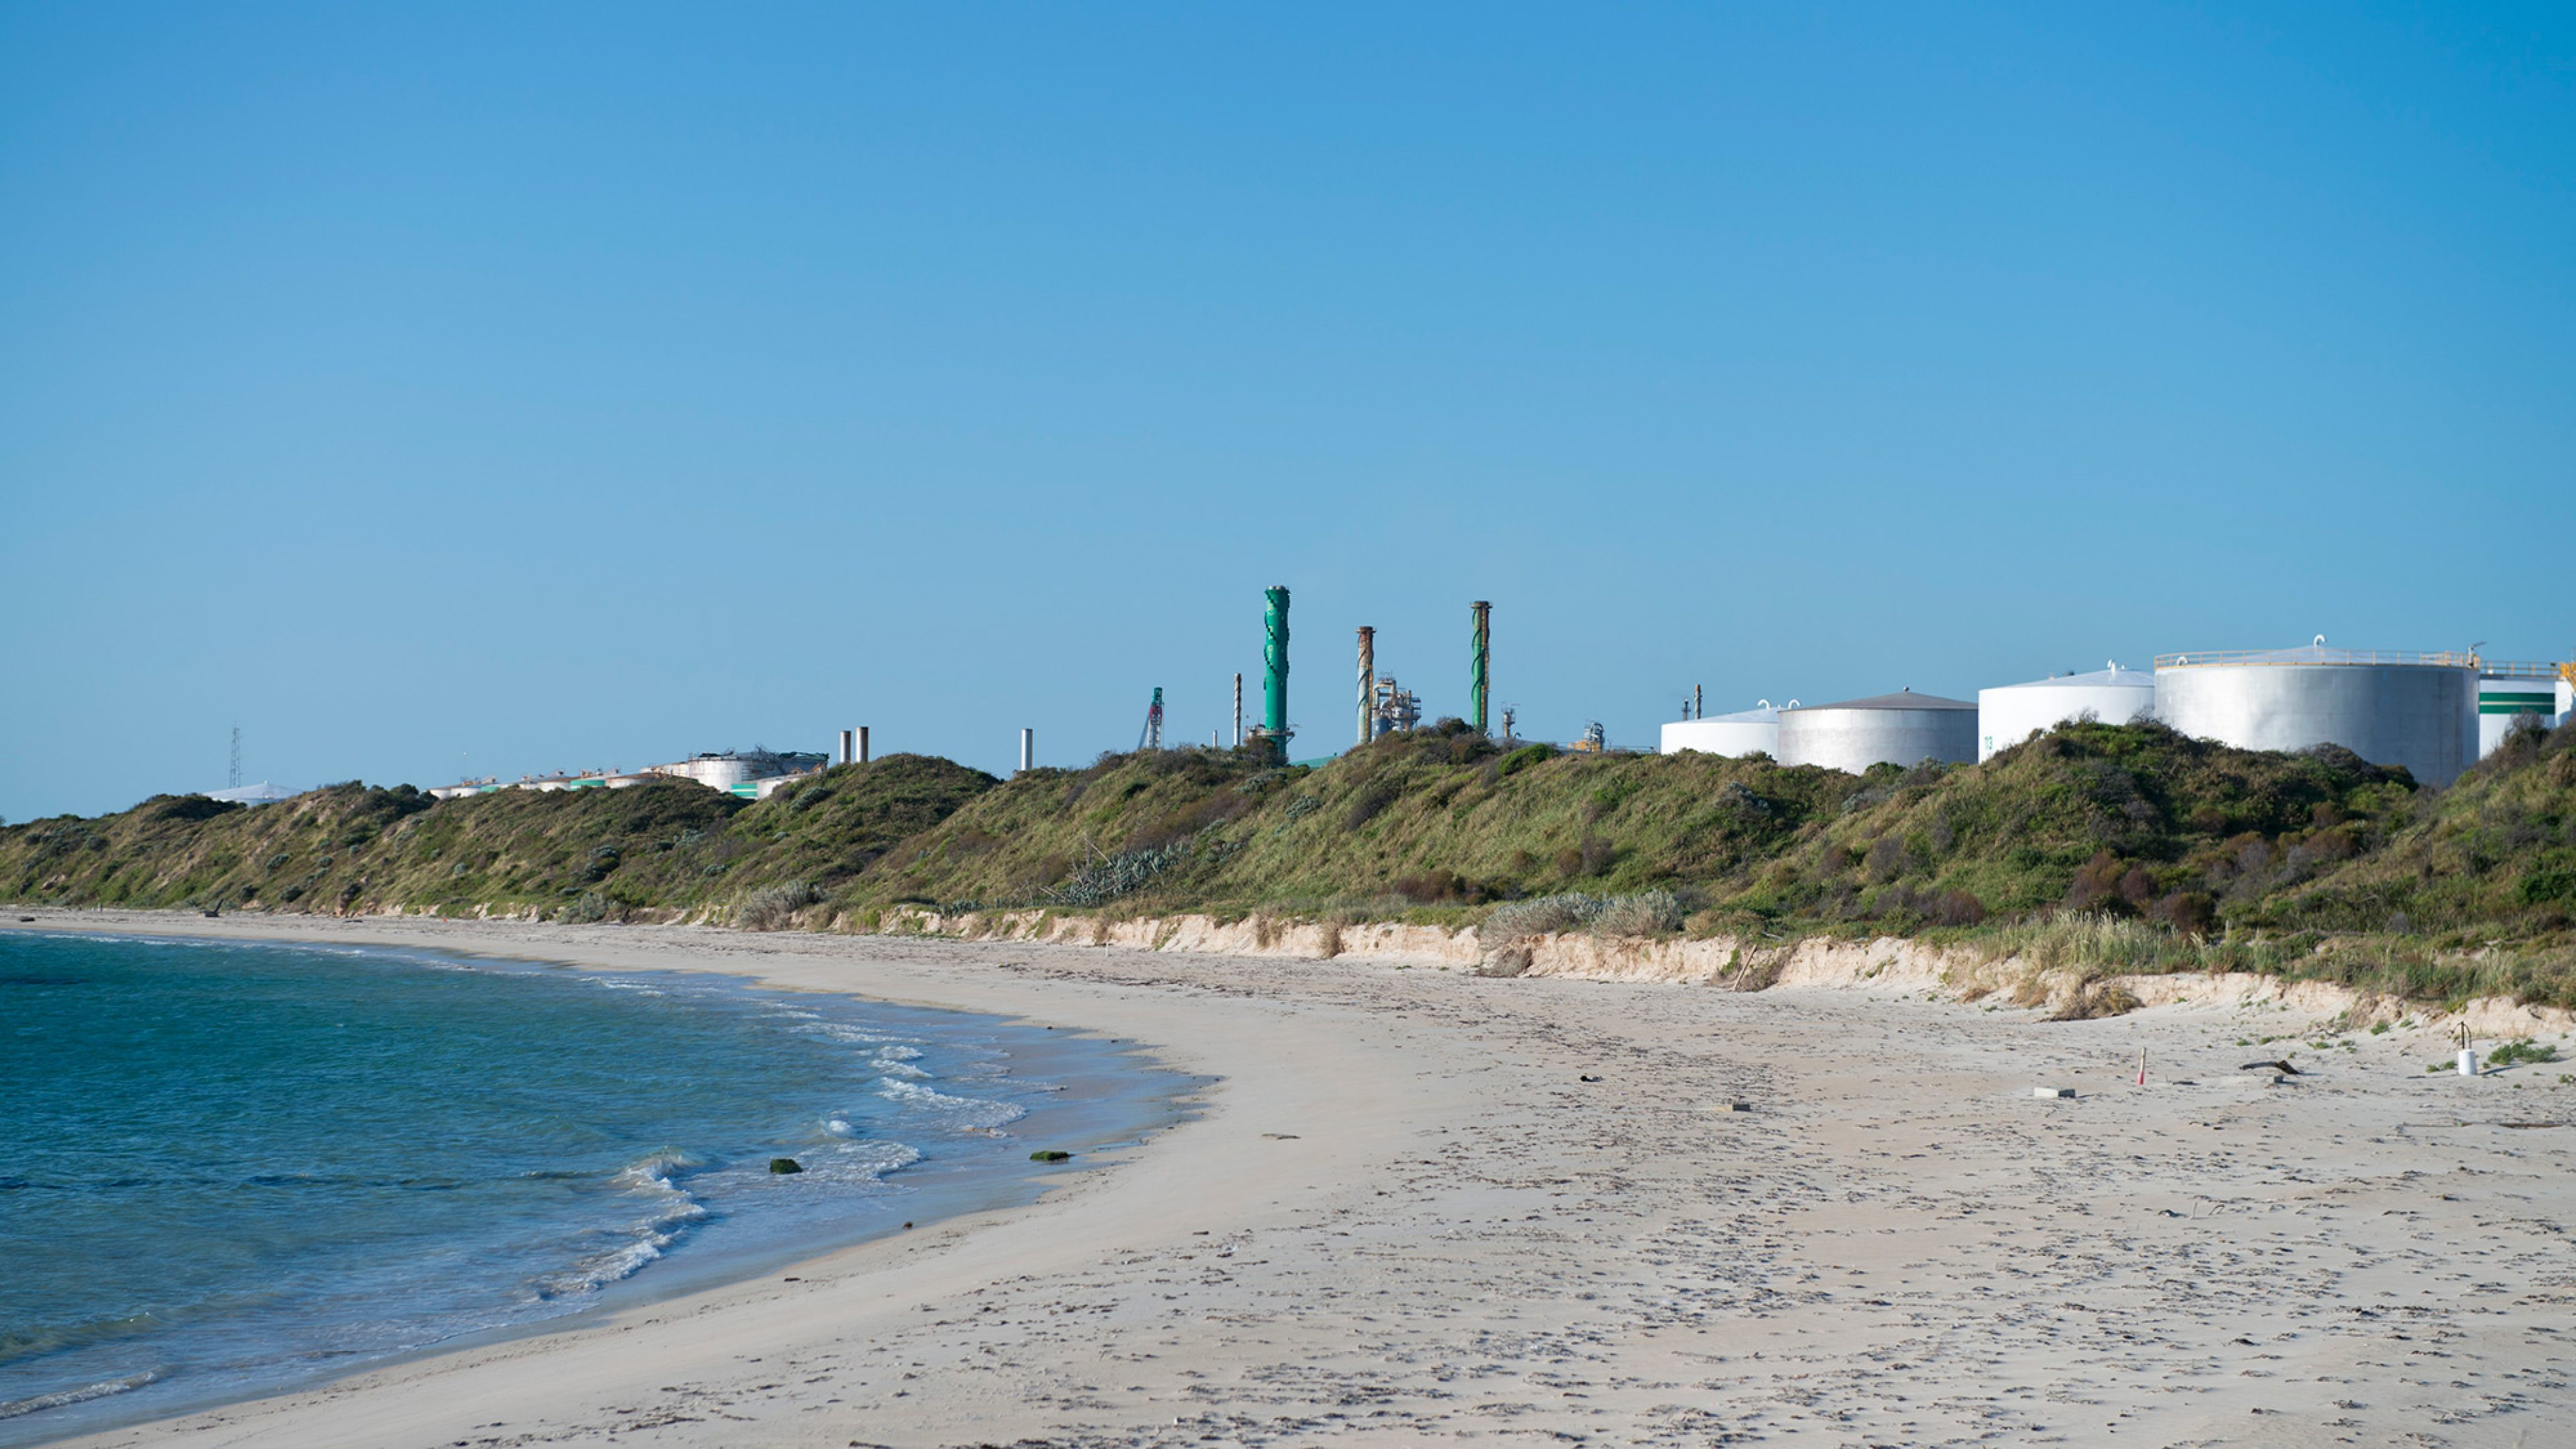 Sixty years supplying fuel to Western Australia | News and